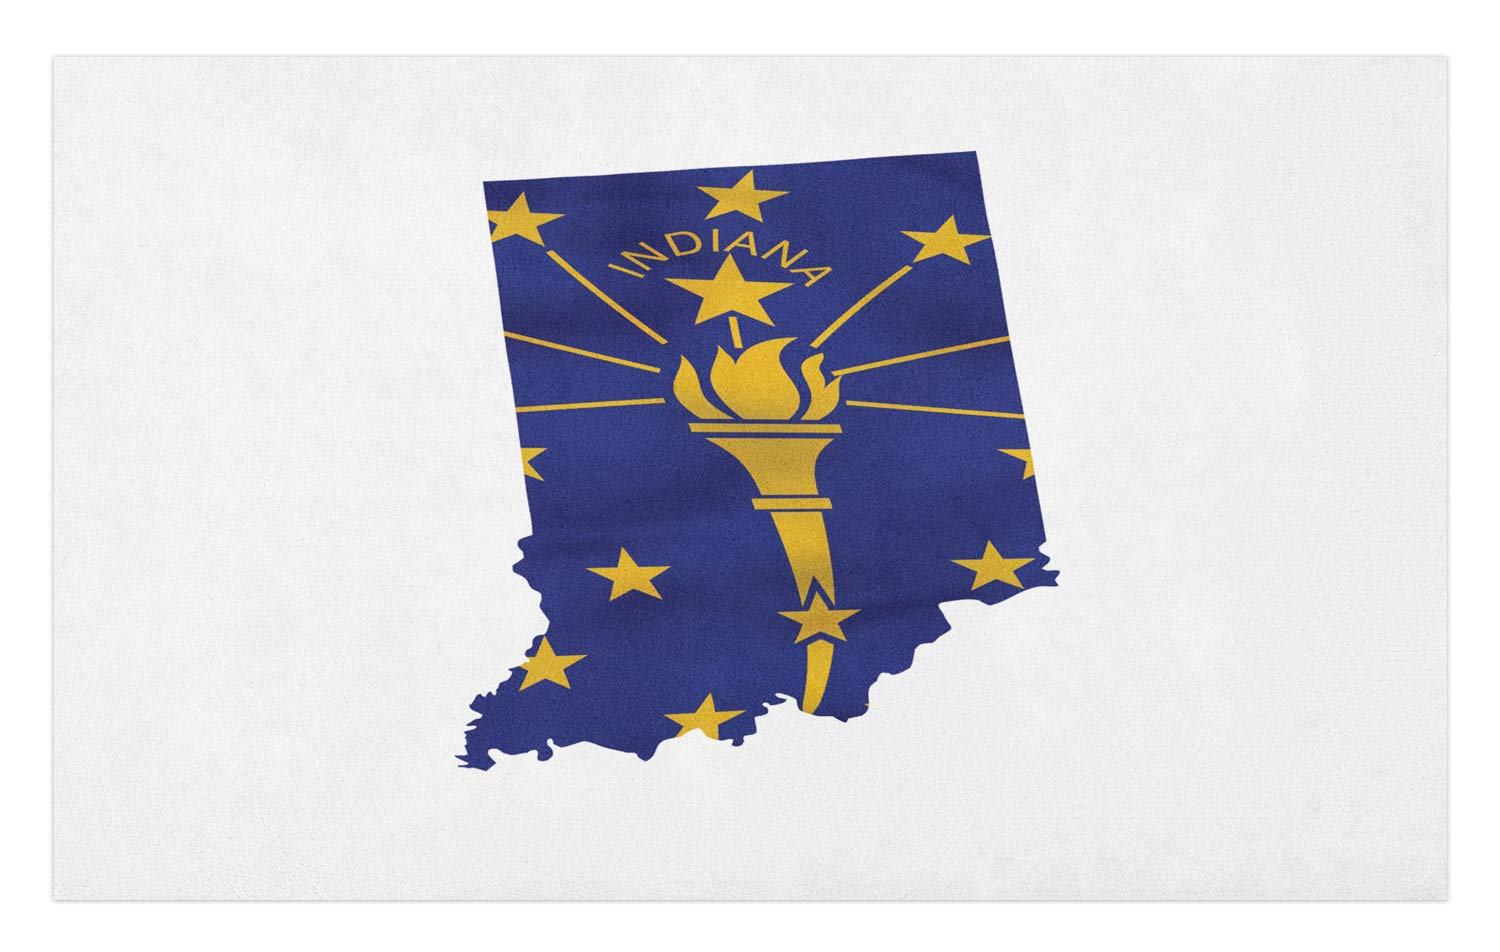 Lunarable Indiana Doormat, Hoosier State Map with Waving Flag Liberty Torch and Rays with Stars, Decorative Polyester Floor Mat with Non-Skid Backing, 30 W X 18 L Inches, Earth Yellow Cobalt Blue